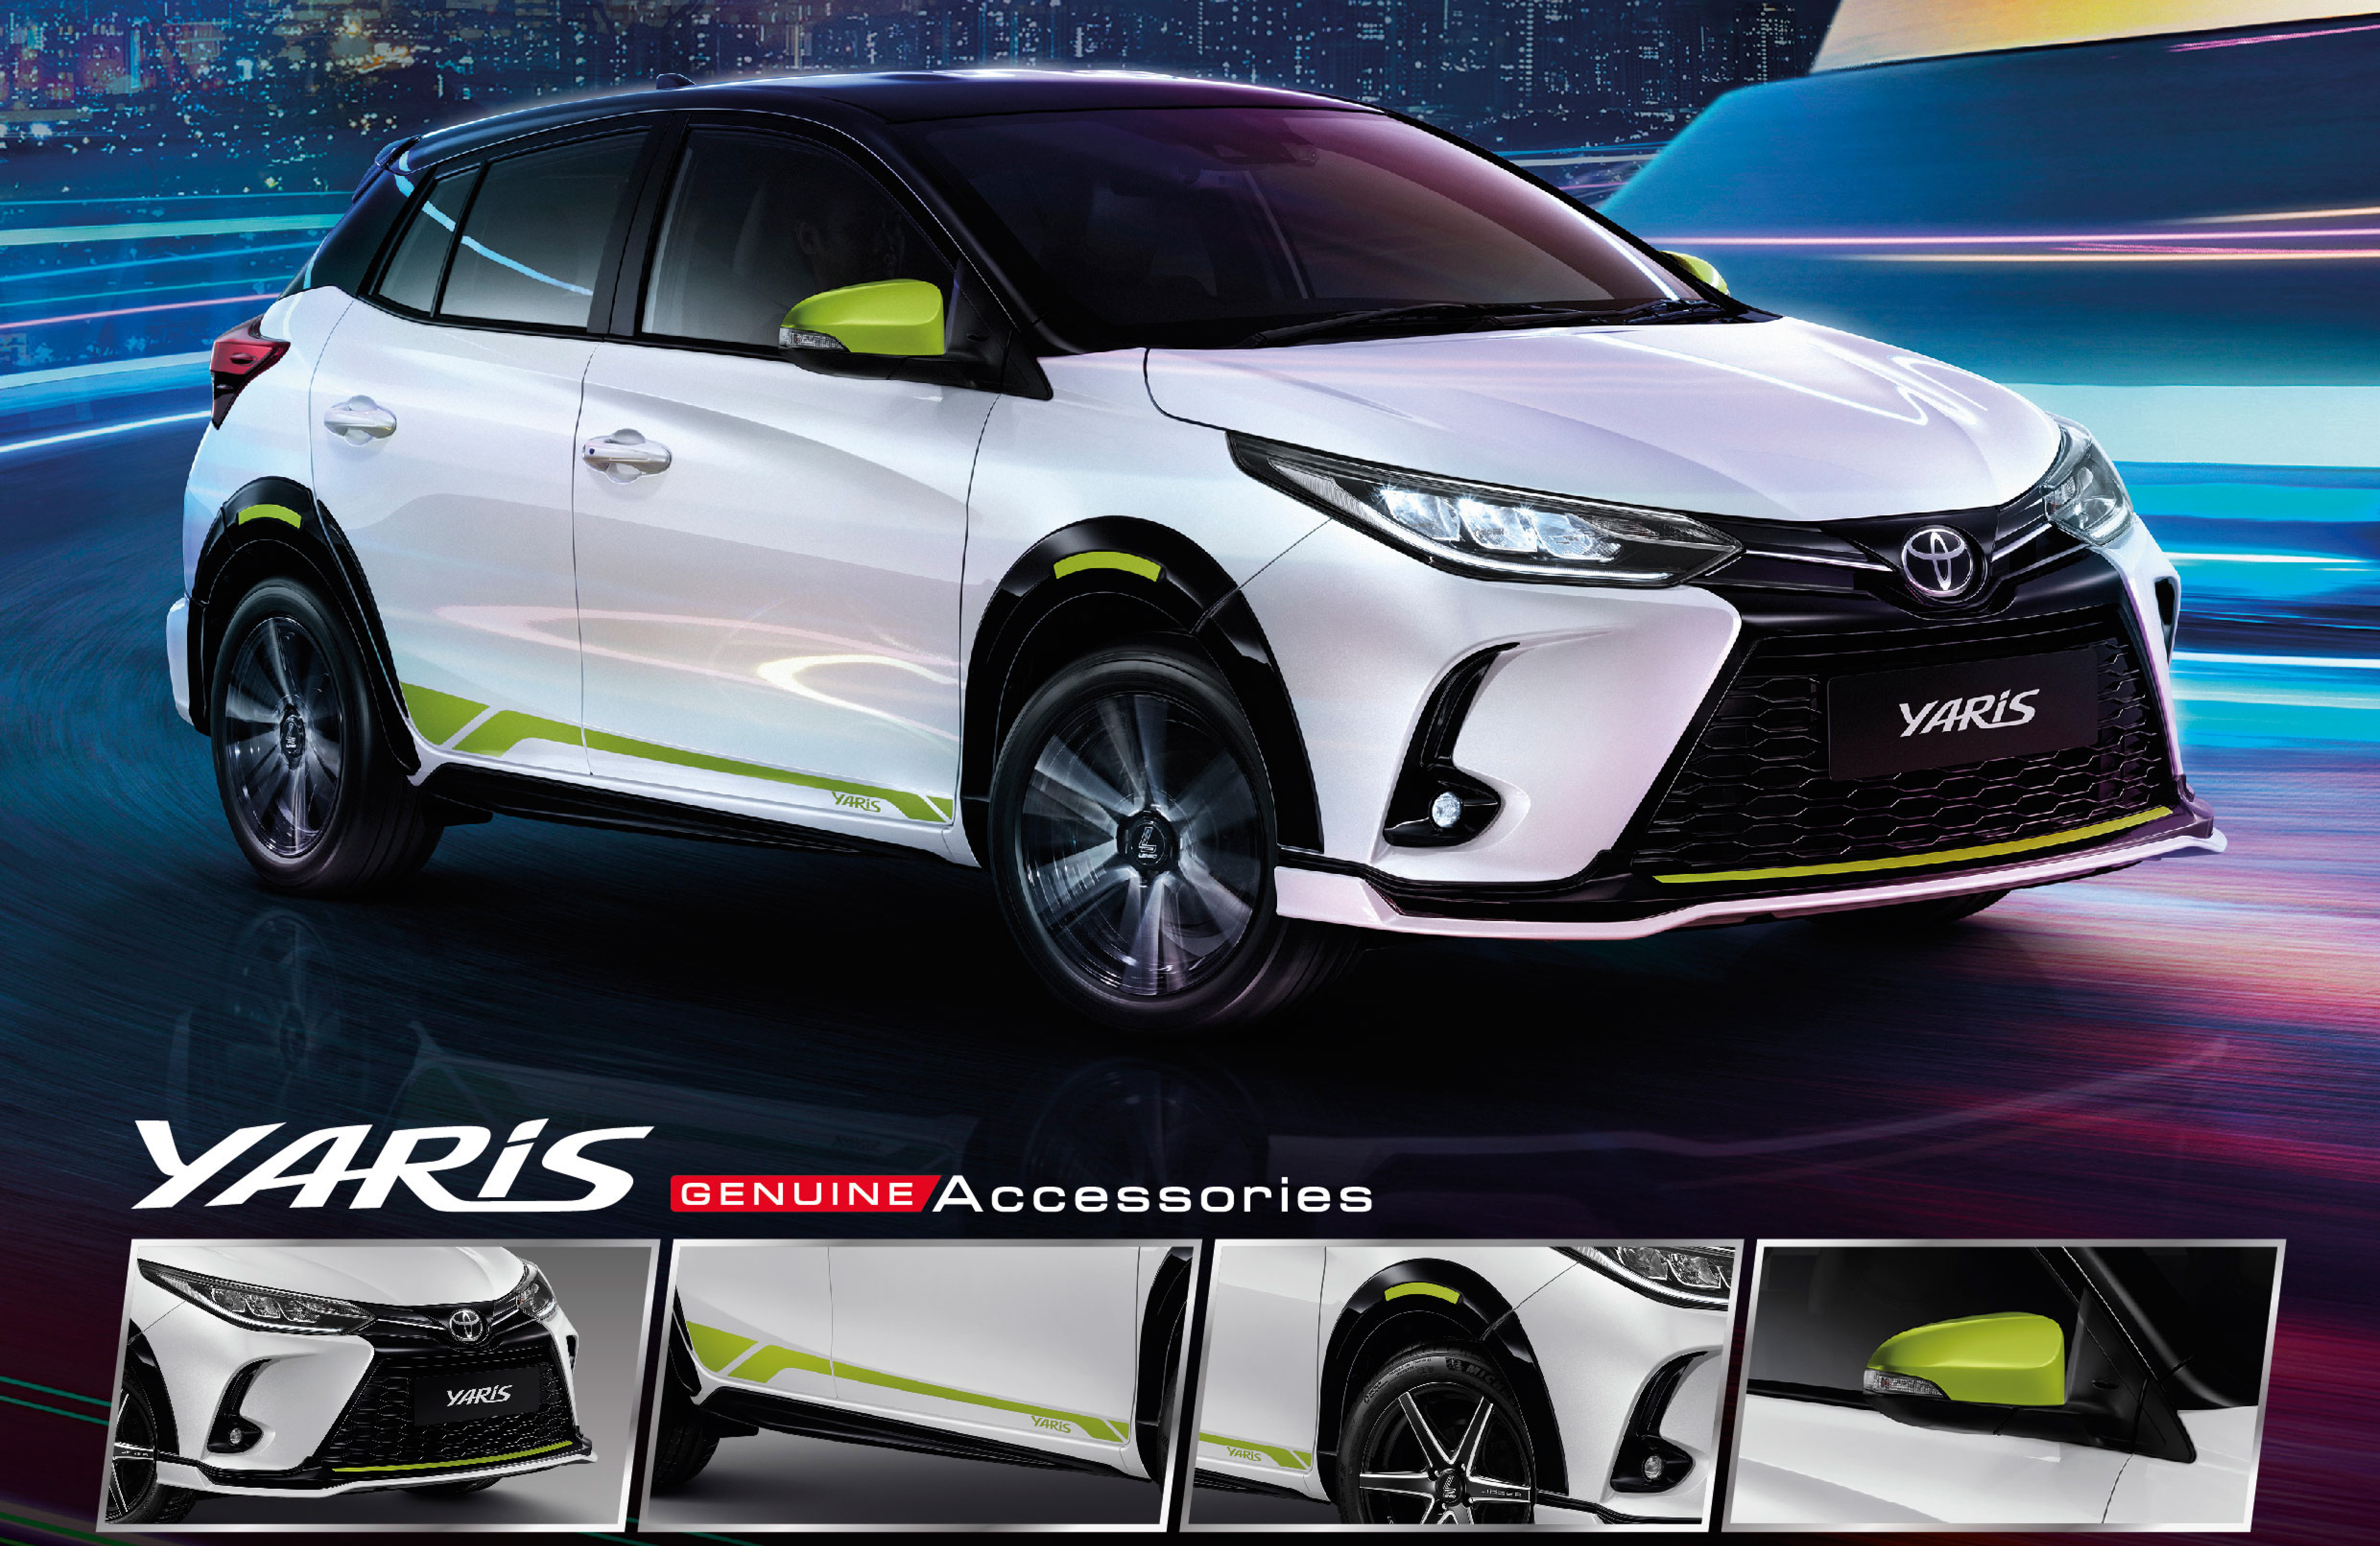 2020 Toyota Yaris and Yaris Ativ facelift launched in Thailand – now with AEB and new styling; from RM72k Image #1163690